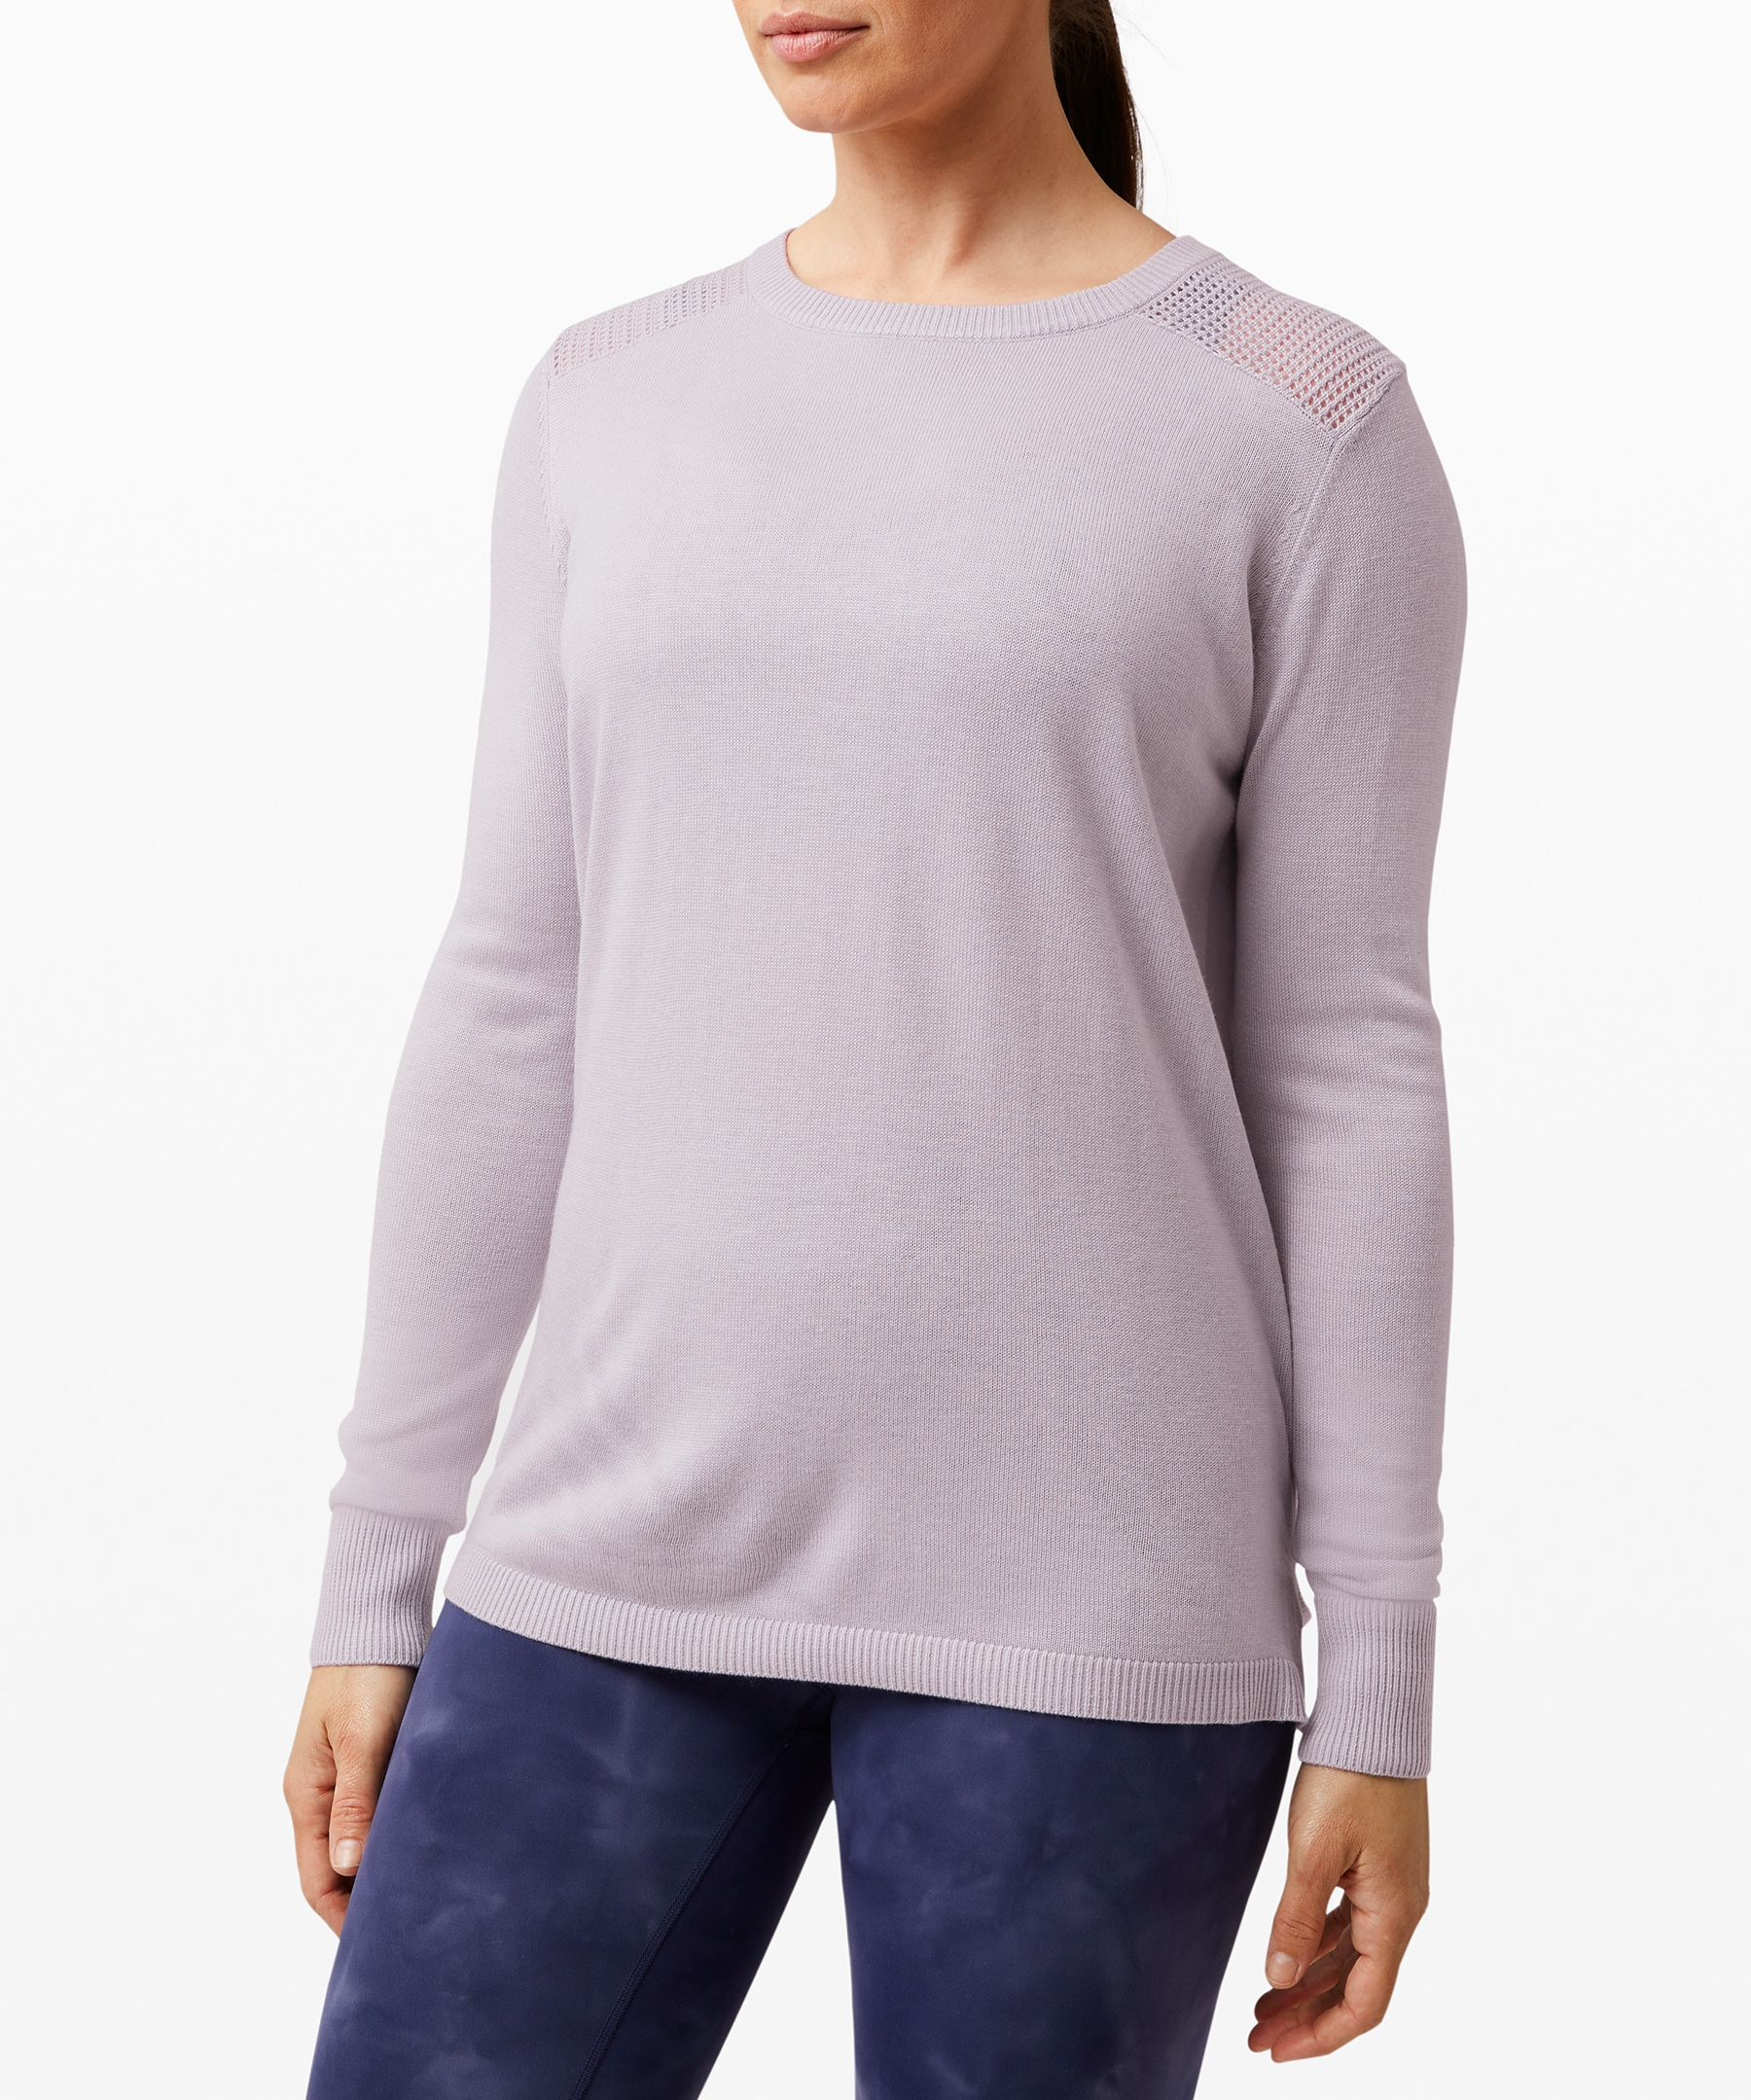 With an open back detail for  ventilation, this lightweight  sweater is easy to throw on  when you need to increase the  cool factor.